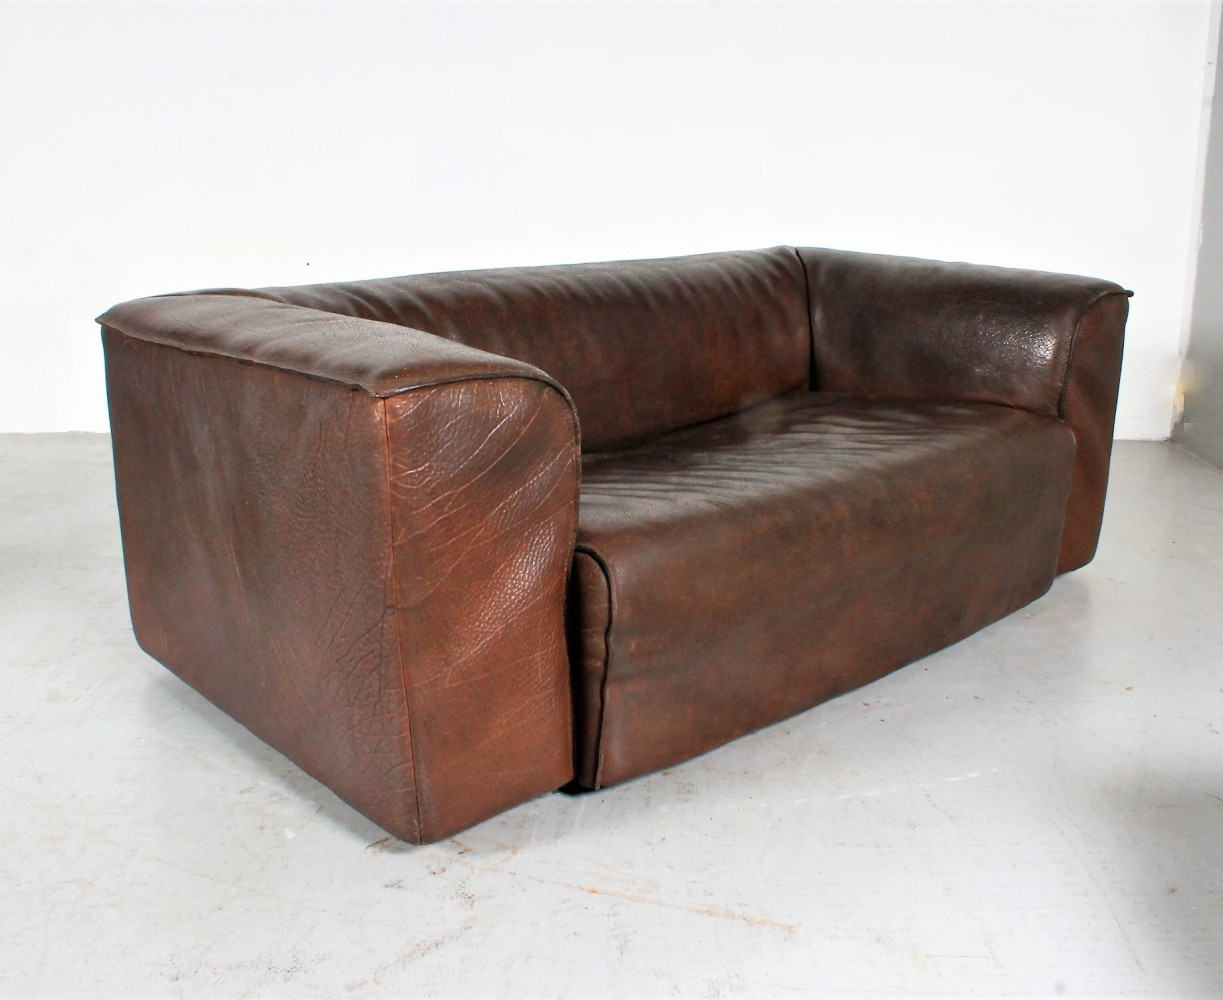 Rare De Sede neckleather sofa by Robert Haussmann in cigarro colour